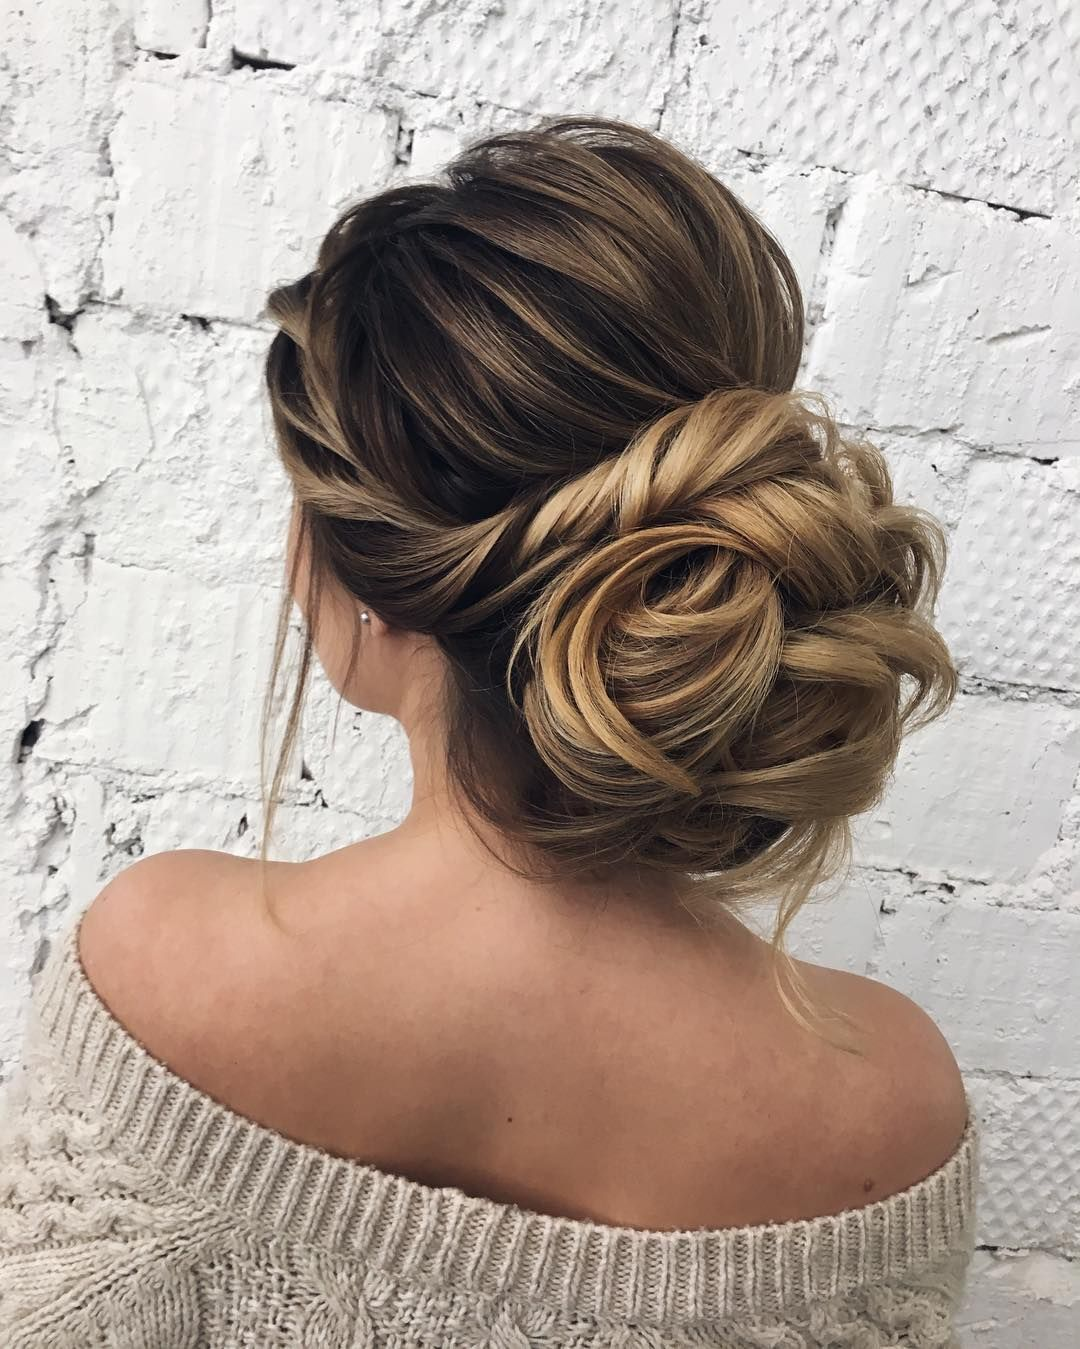 The Best And Fabulous Hairstyles For Every Wedding Dress Neckline Whether You Re A Summer Elegant Wedding Hair Strapless Dress Hairstyles Wedding Hairstyles